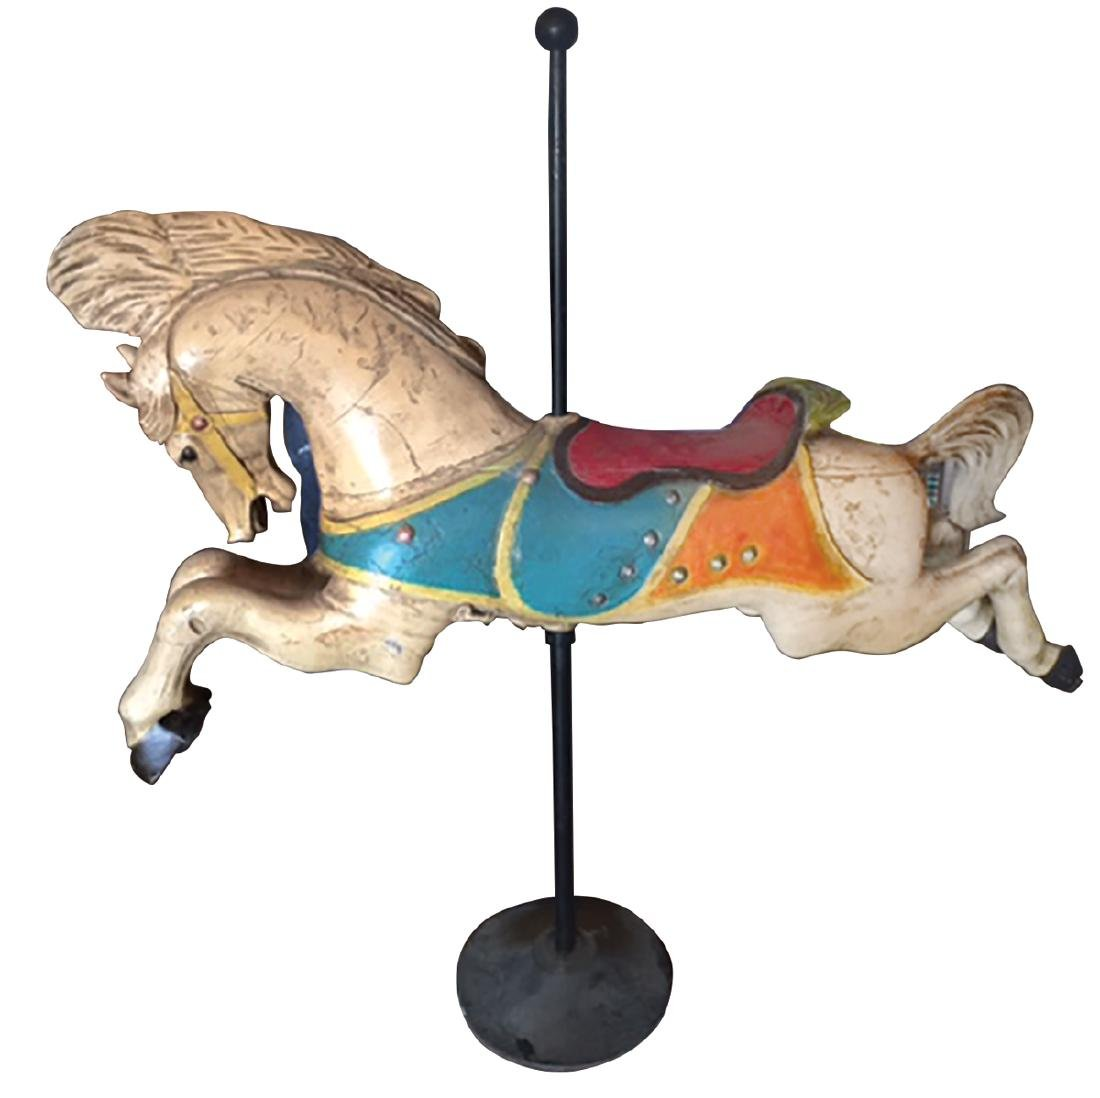 Carousel horse, C.W. Parker, painted aluminum on metal - 2